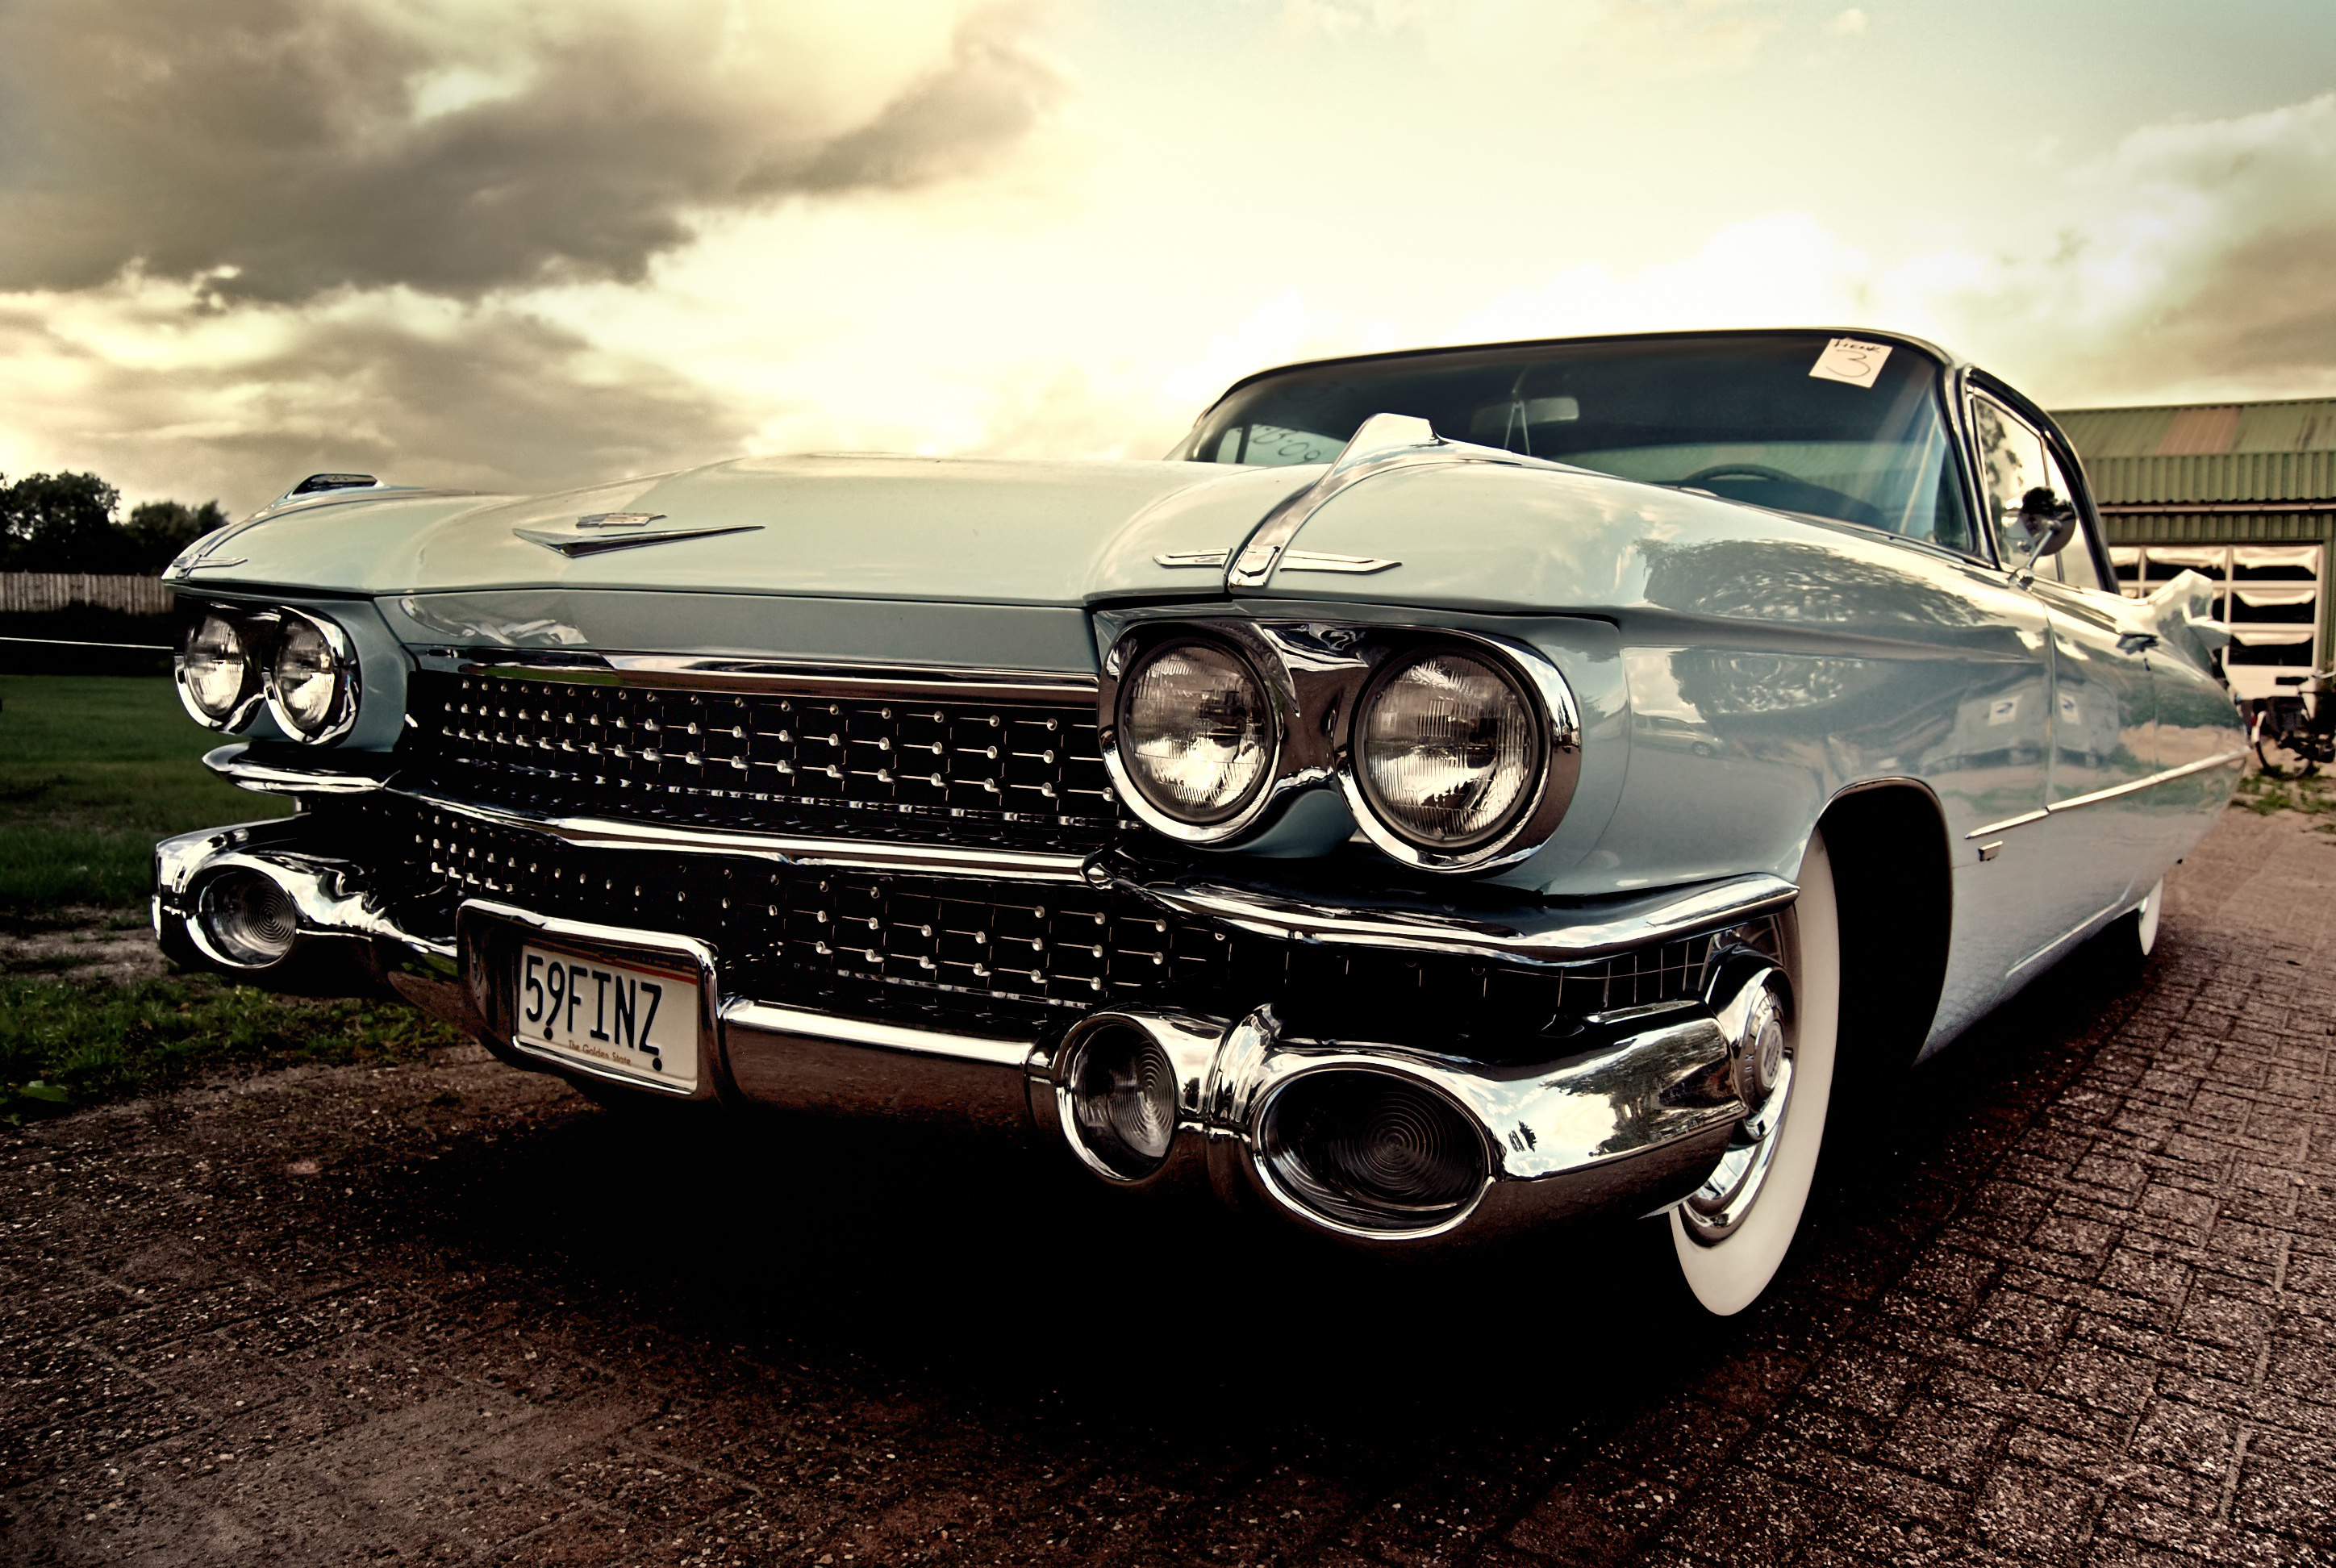 Blue Cadillac Front View 128.4 Kb